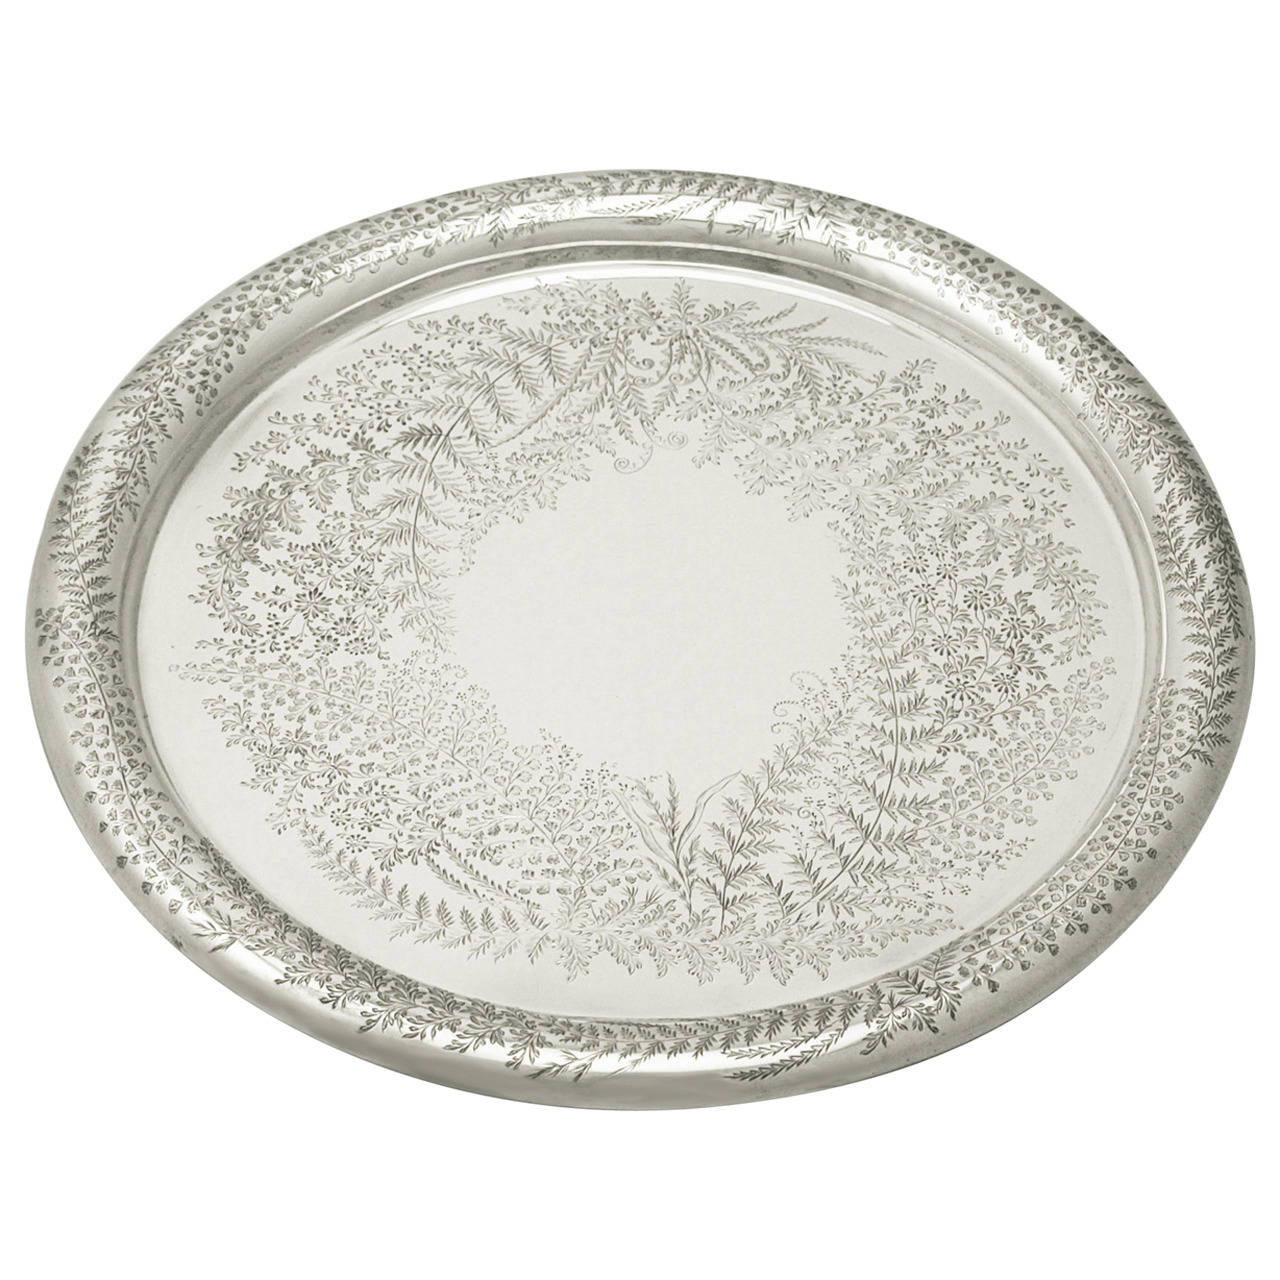 Sterling Silver Salver, Antique Victorian